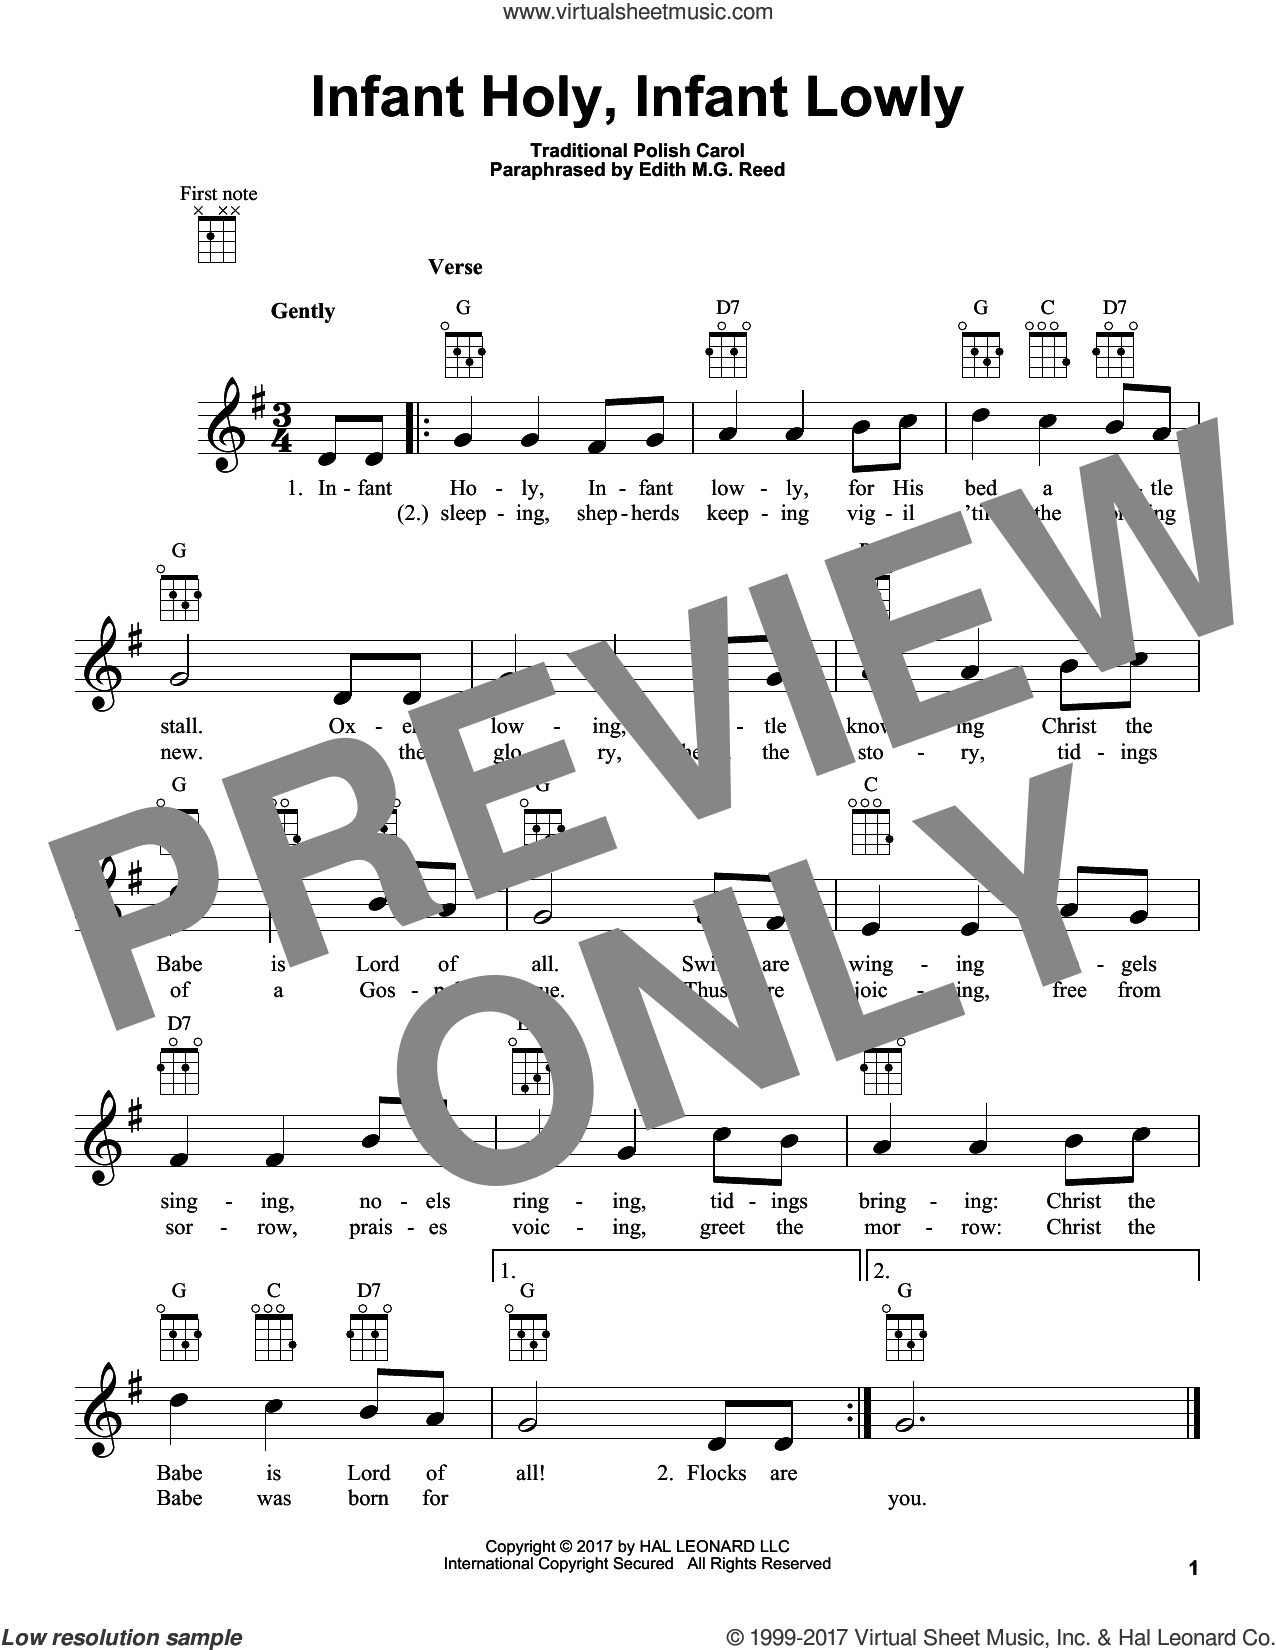 Infant Holy, Infant Lowly sheet music for ukulele by Edith M.G. Reed and Miscellaneous, intermediate skill level